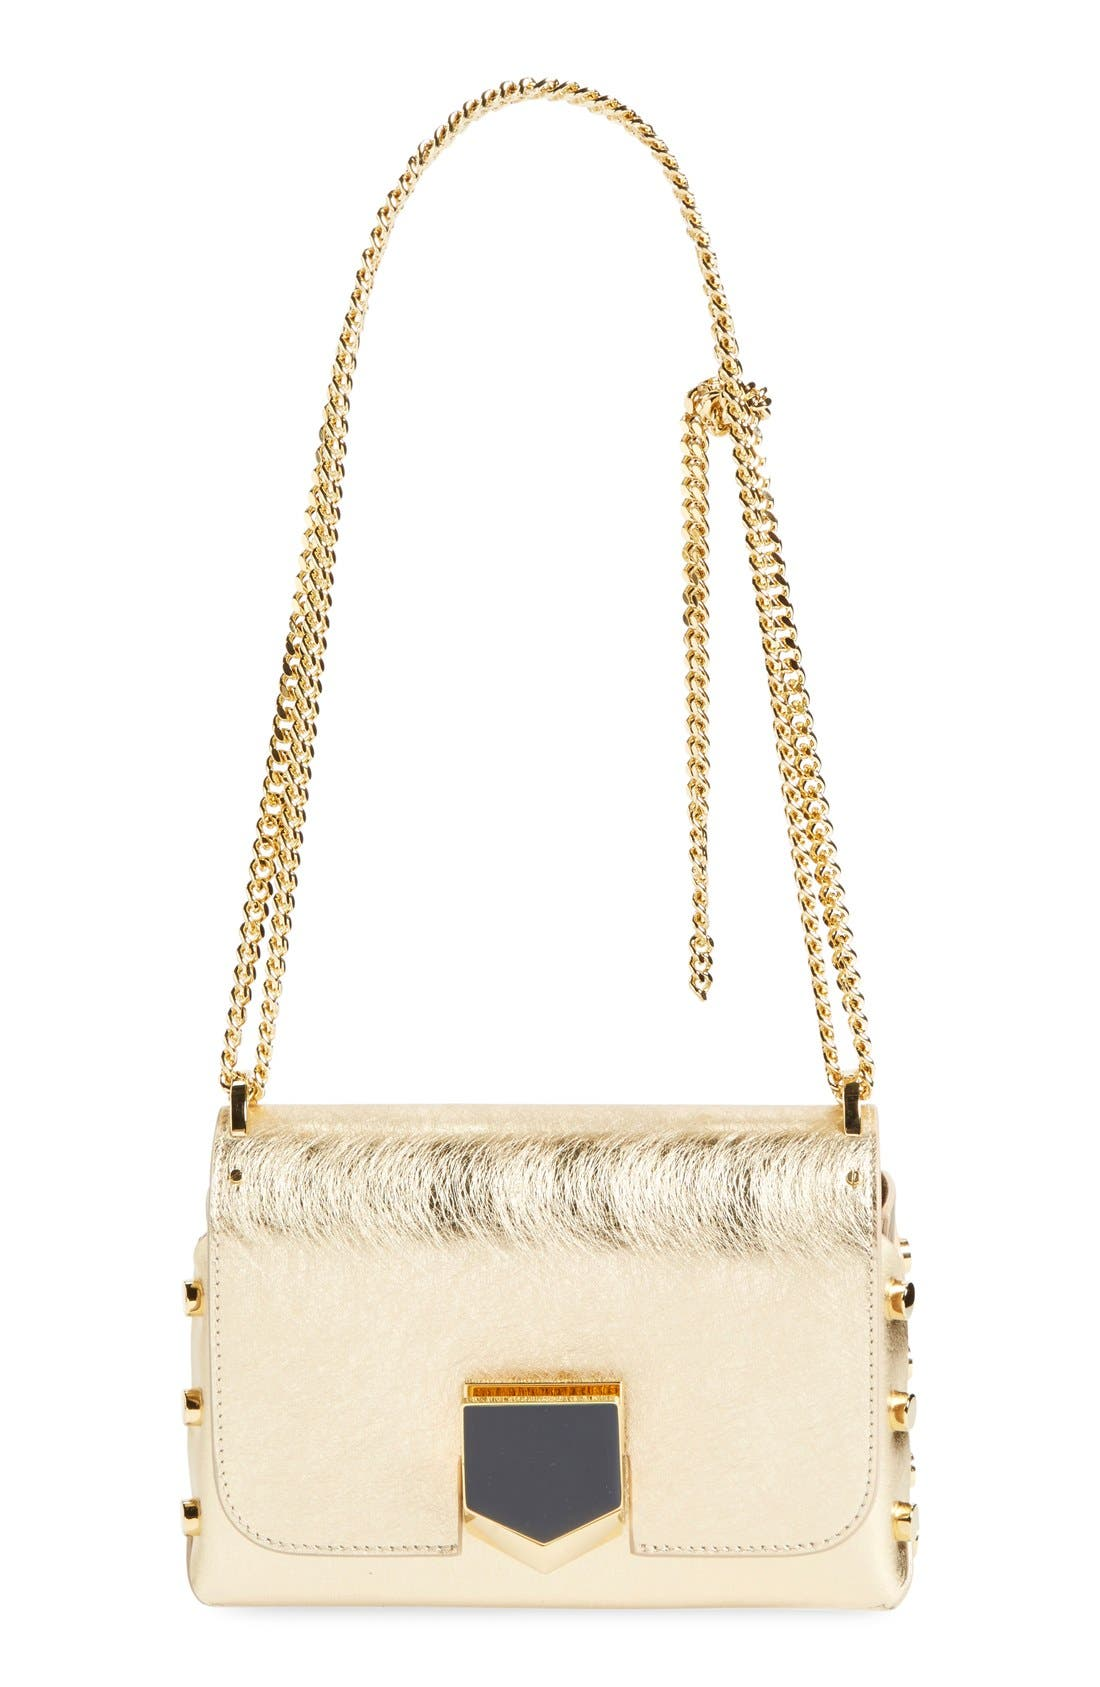 JIMMY CHOO 'Lockett Petite' Metallic Leather Shoulder Bag